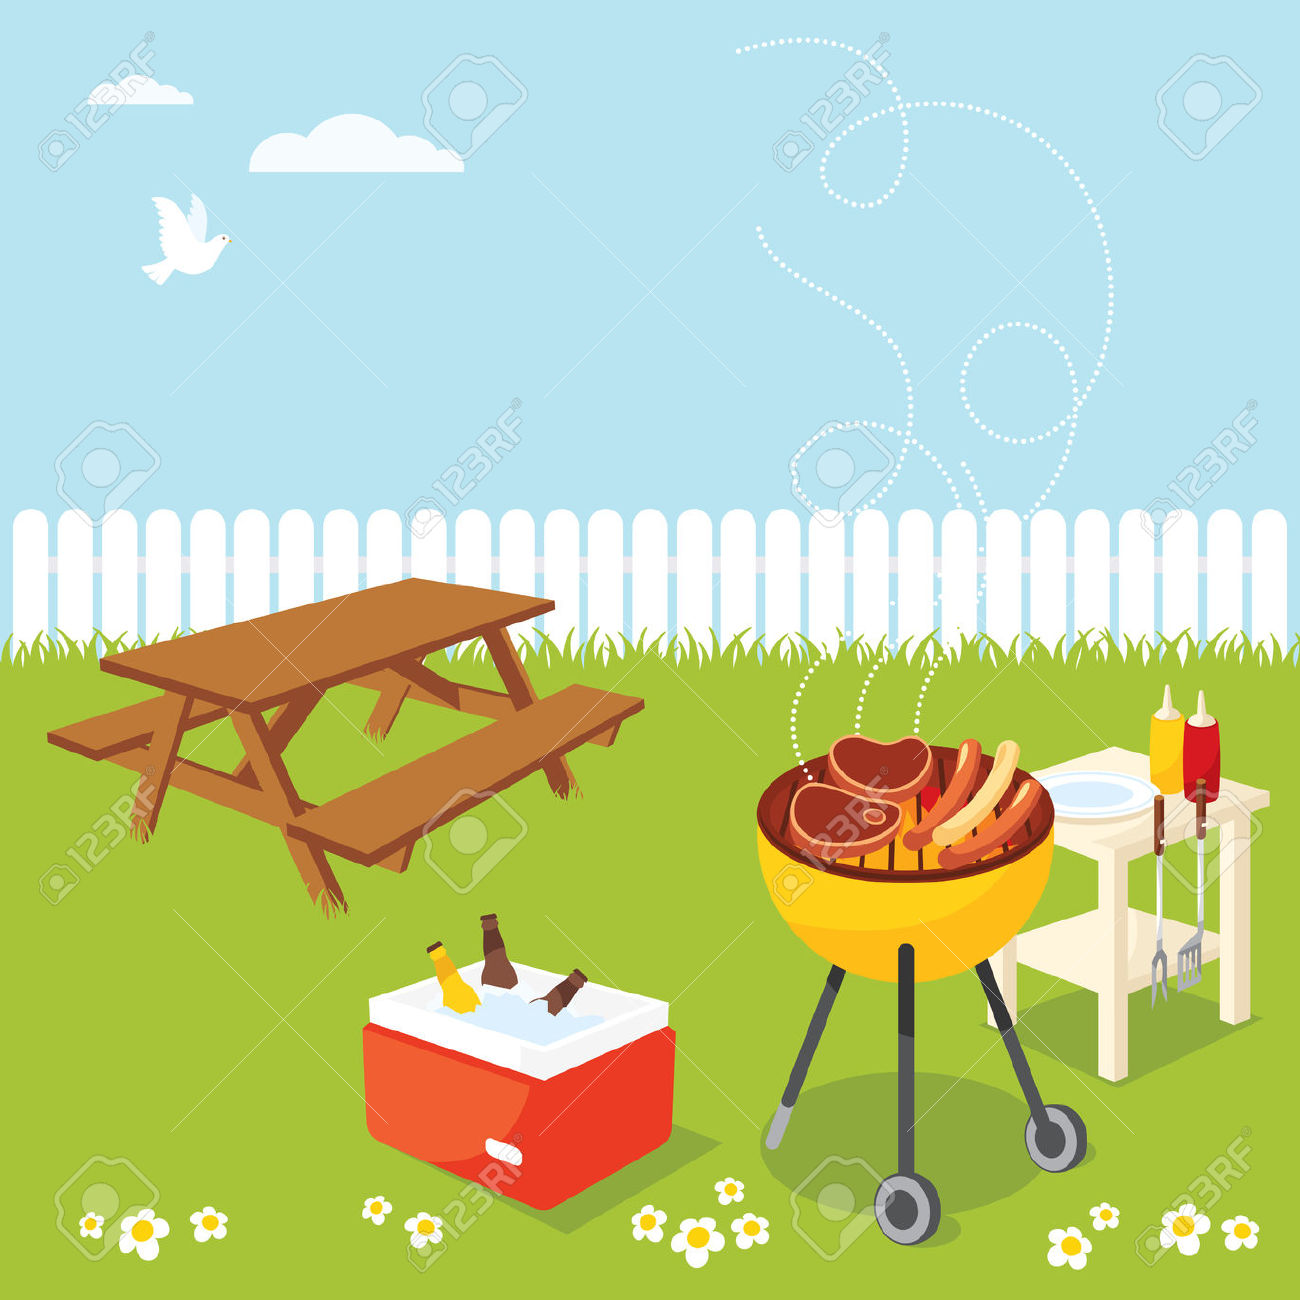 Barbecue clipart bbq party Clipart Free Panda Clipart backyard%20clipart